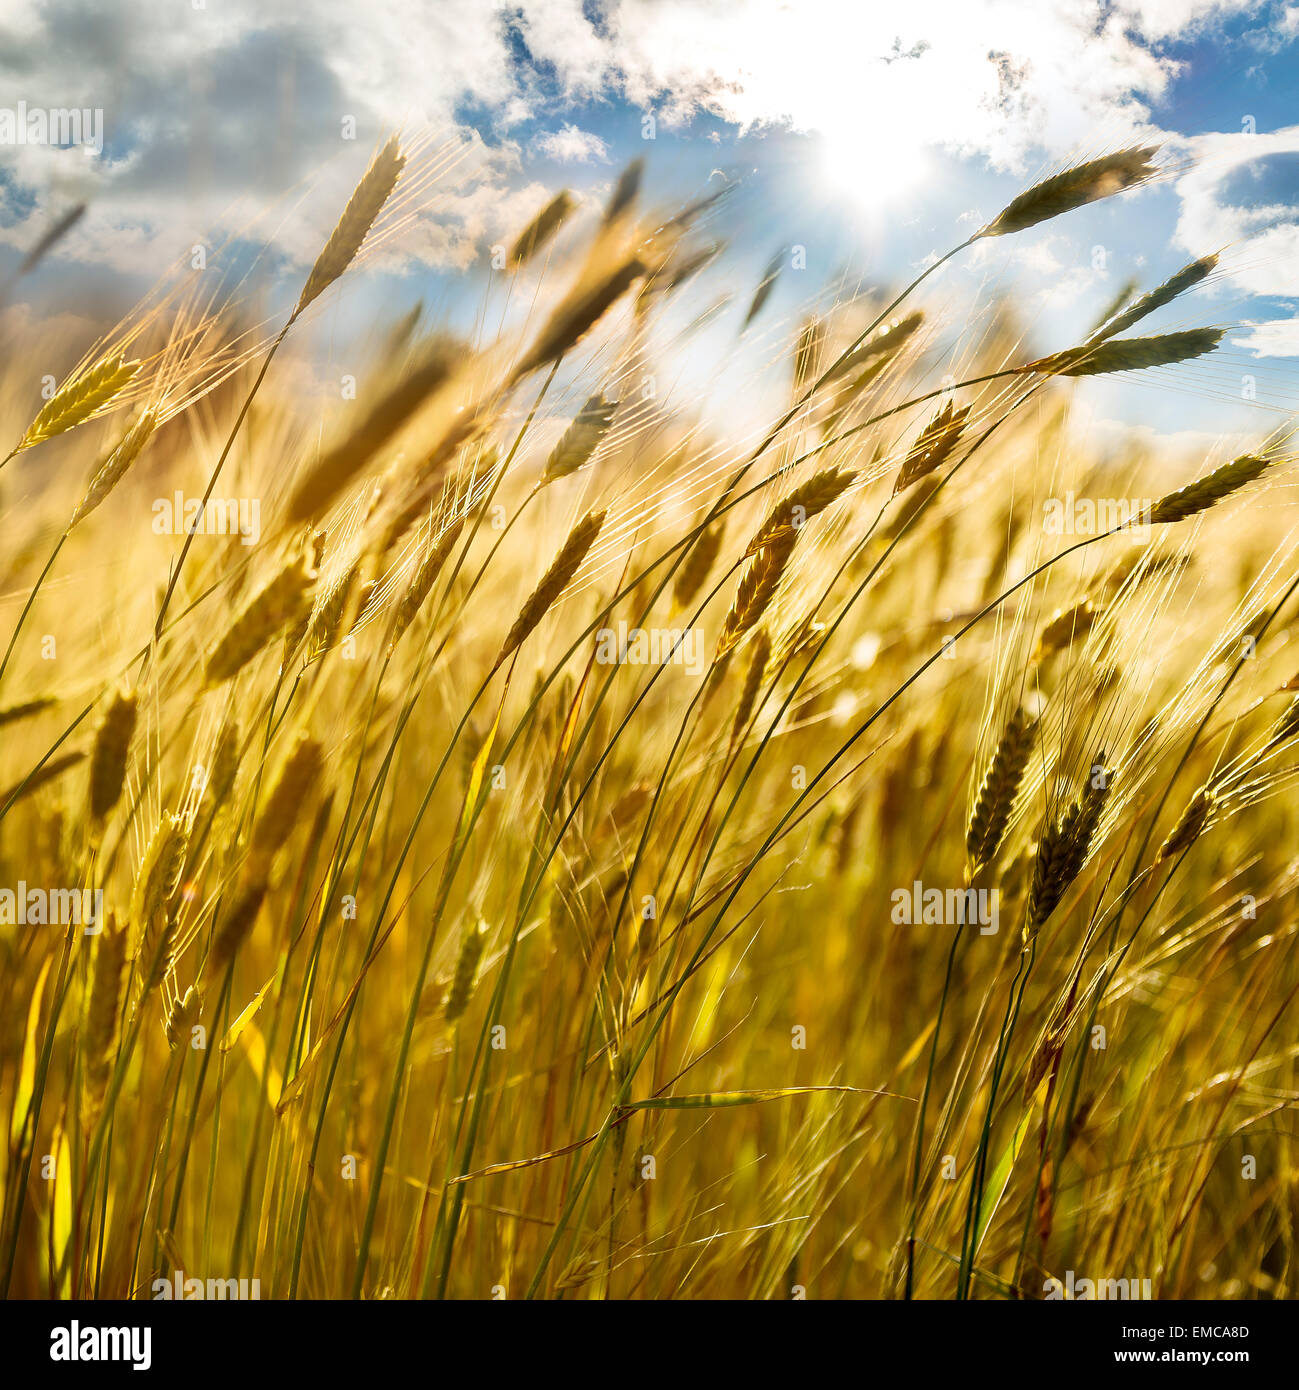 backdrop of ripening ears of yellow wheat field on the sunset cloudy orange sky background Copy space of the setting - Stock Image